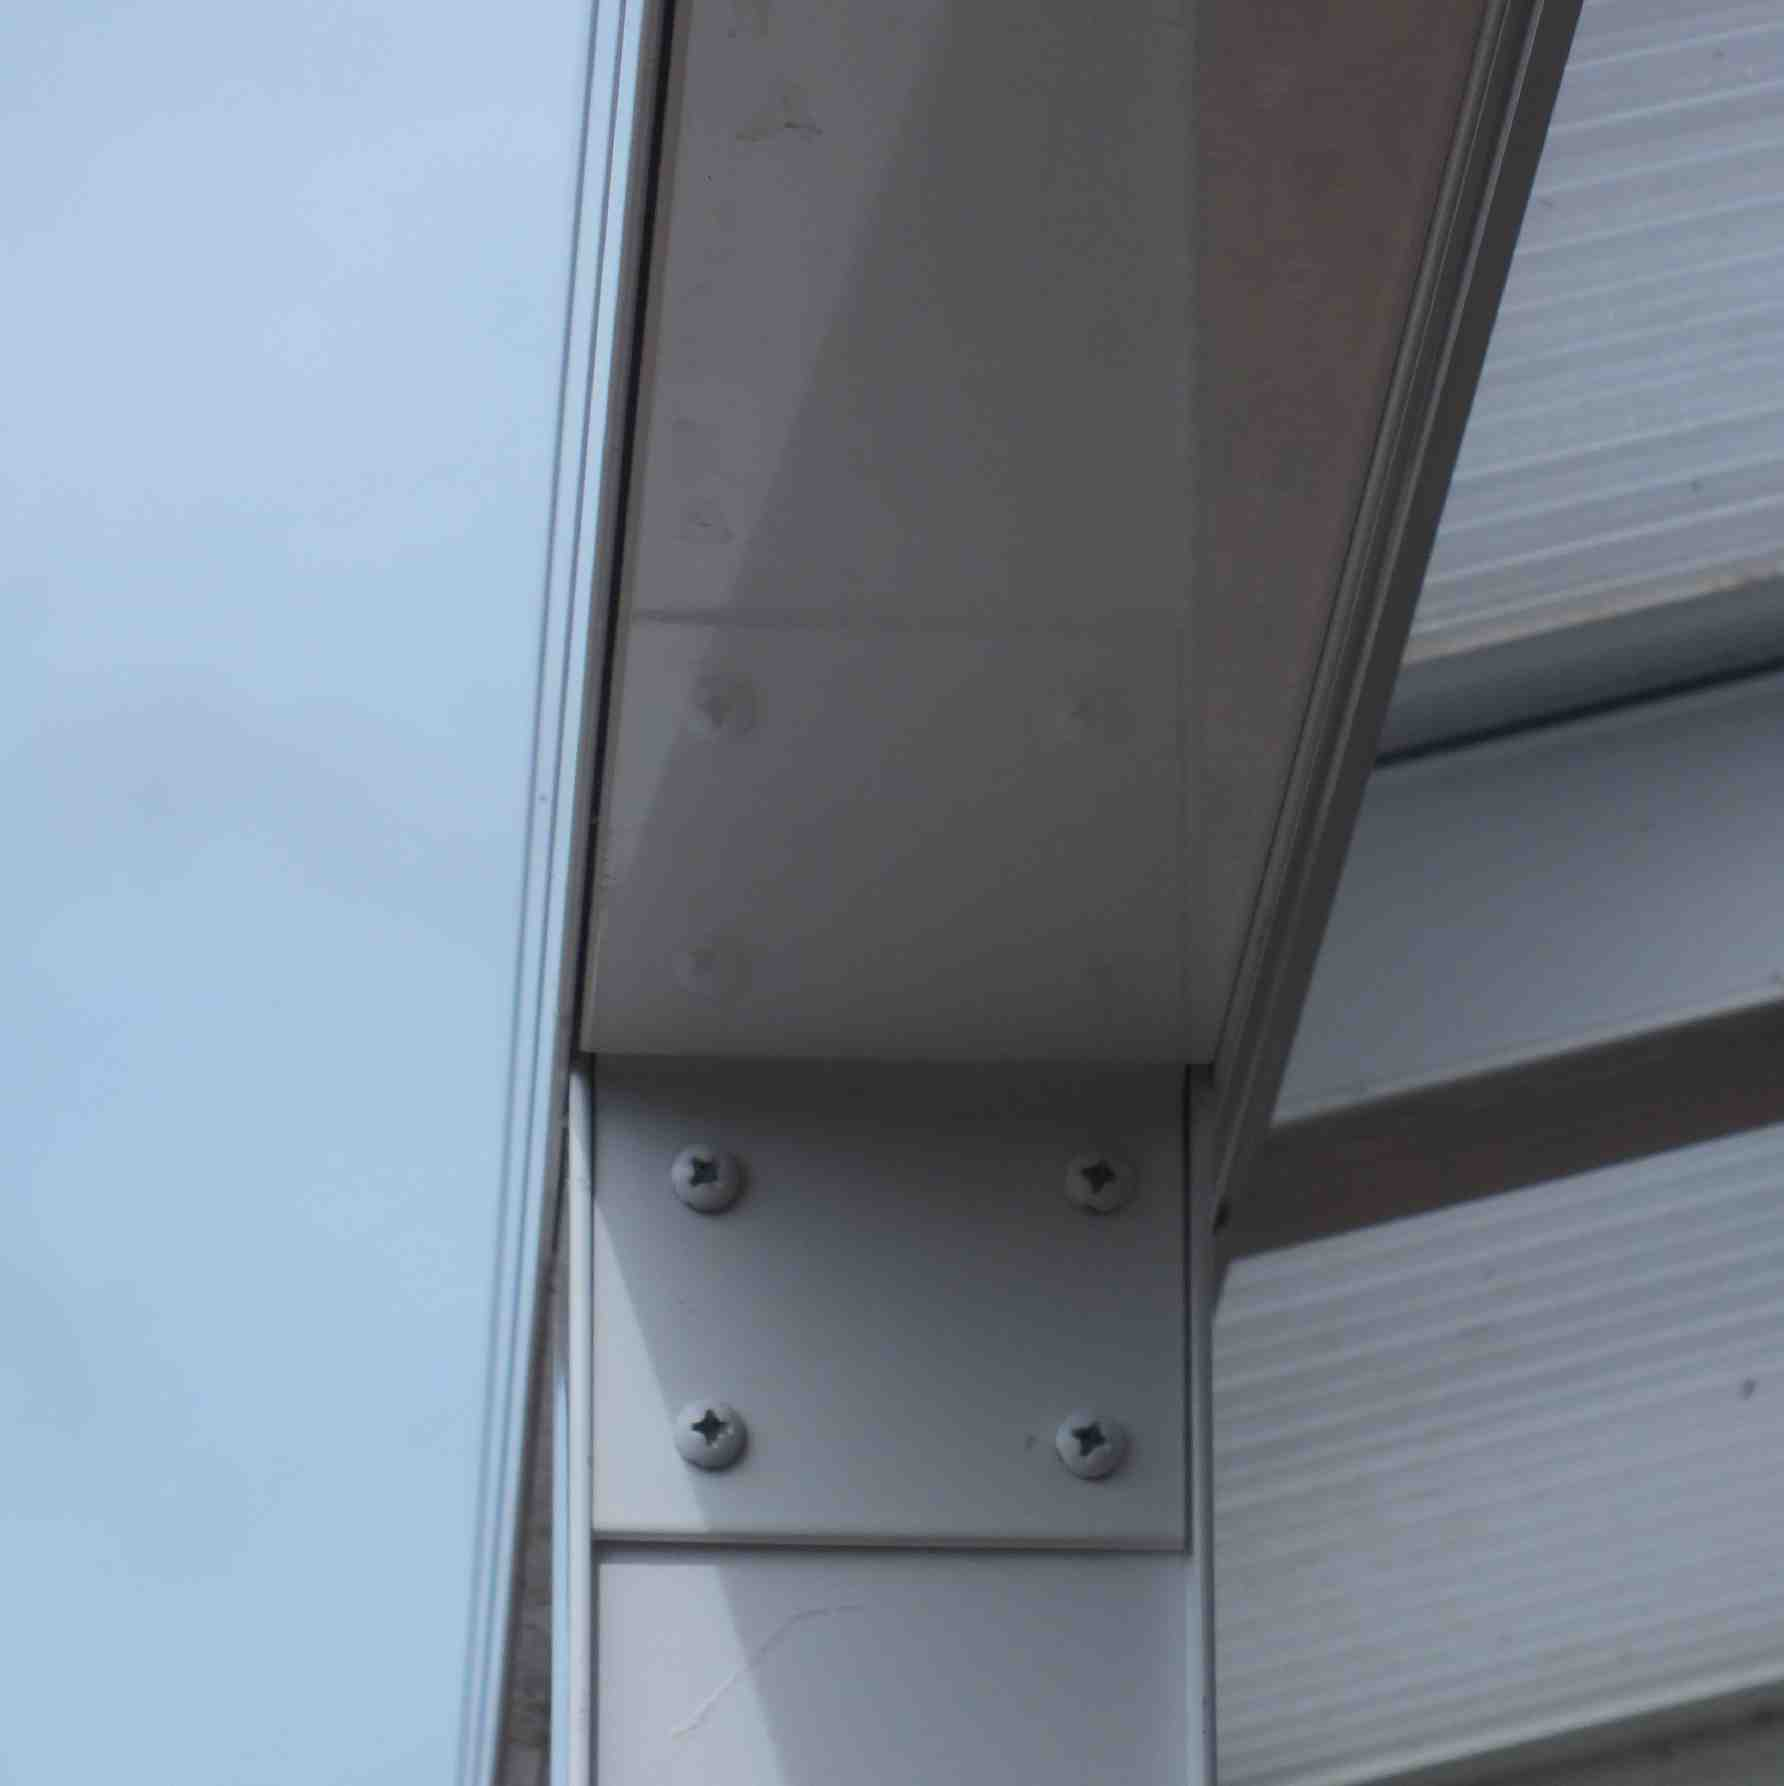 Affordable Omega Verandah with 16mm Polycarbonate Glazing - 4.8m (W) x 4.5m (P), (3) Supporting Posts